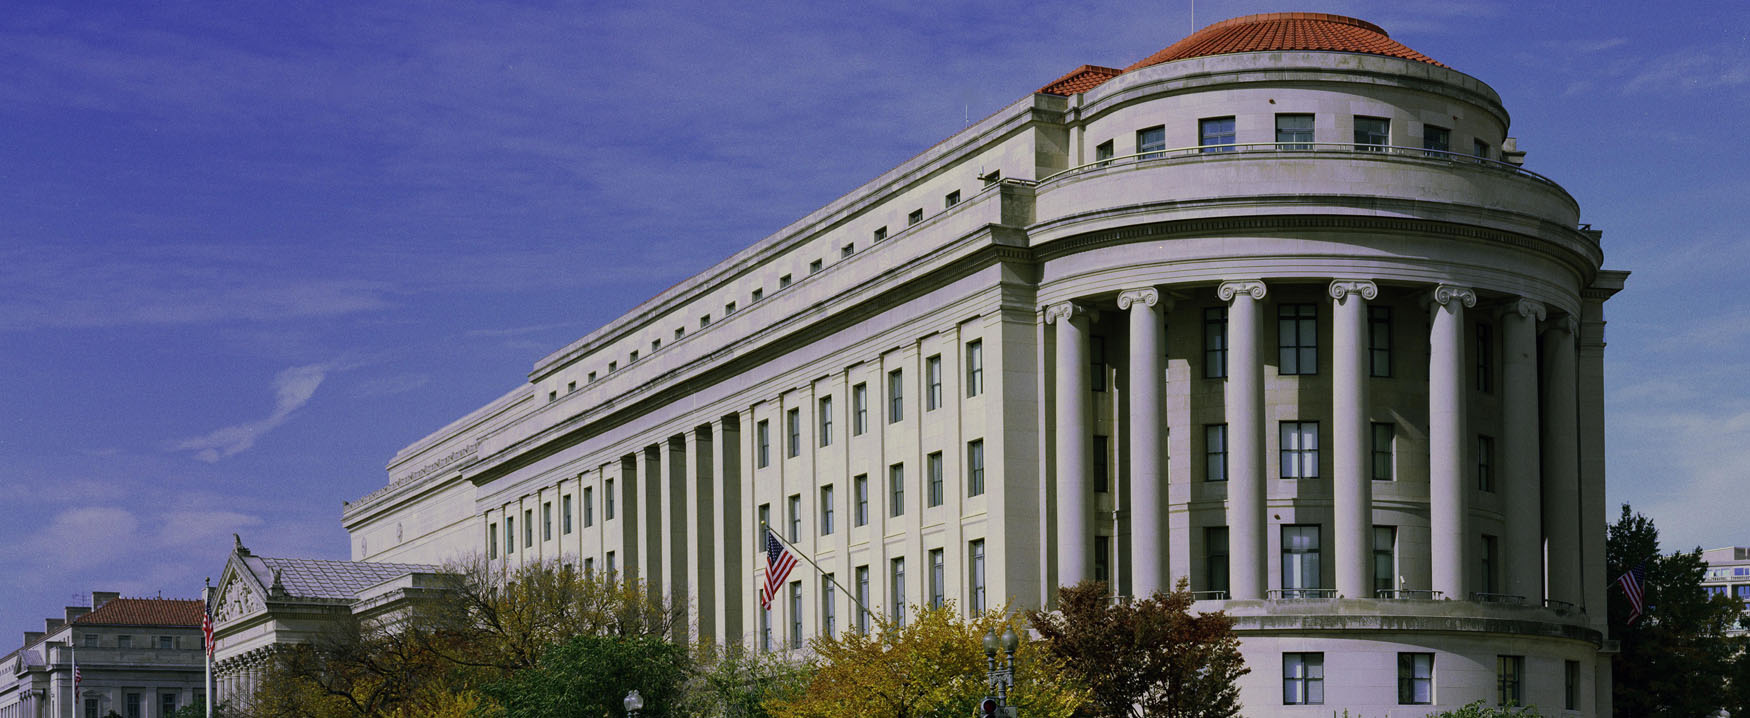 A picture of the United States Federal Trade Commission building in Washington DC.  The seven-story building is made of gray-white granite.  One end of the building is rounded with large pillars.  The rest of the building is rectangular.